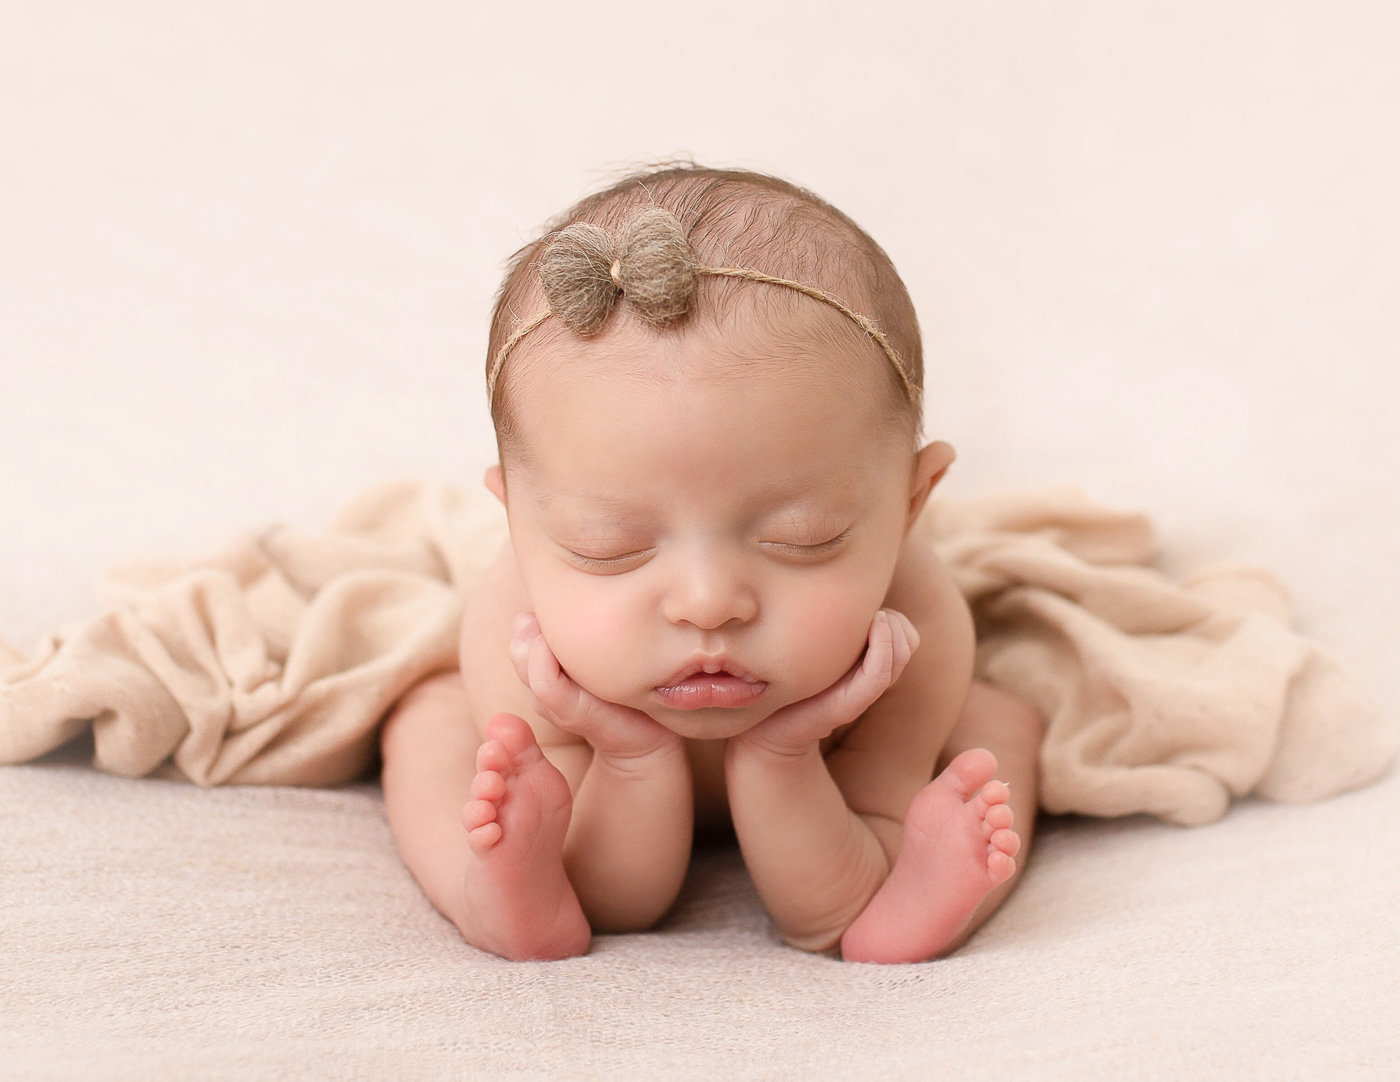 Posed newborn at our studio in Rochester, NY.